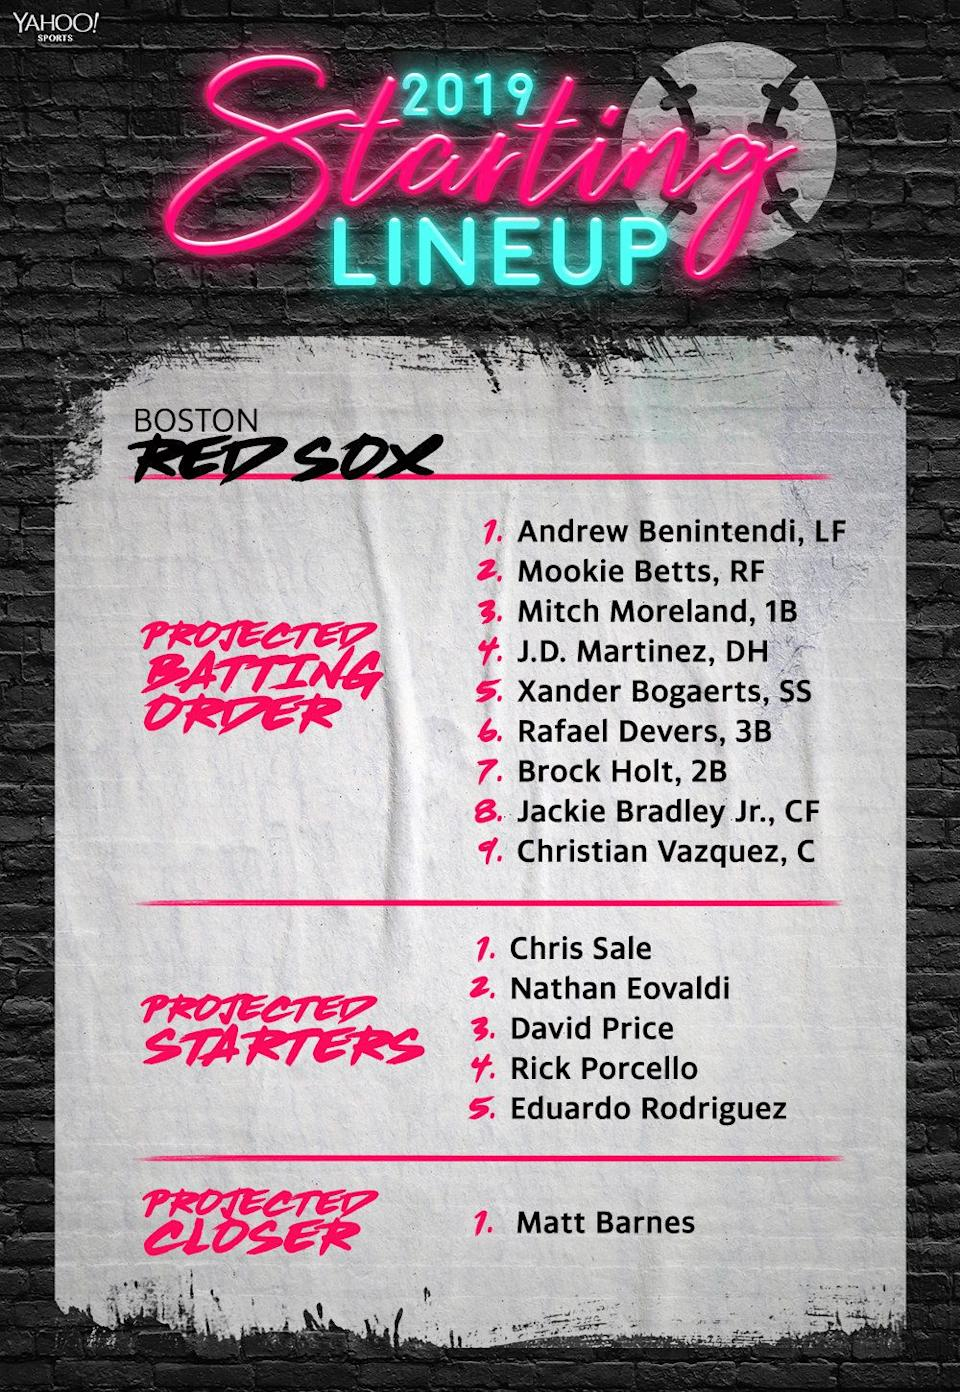 The Boston Red Sox projected lineup for 2019. (Yahoo Sports)